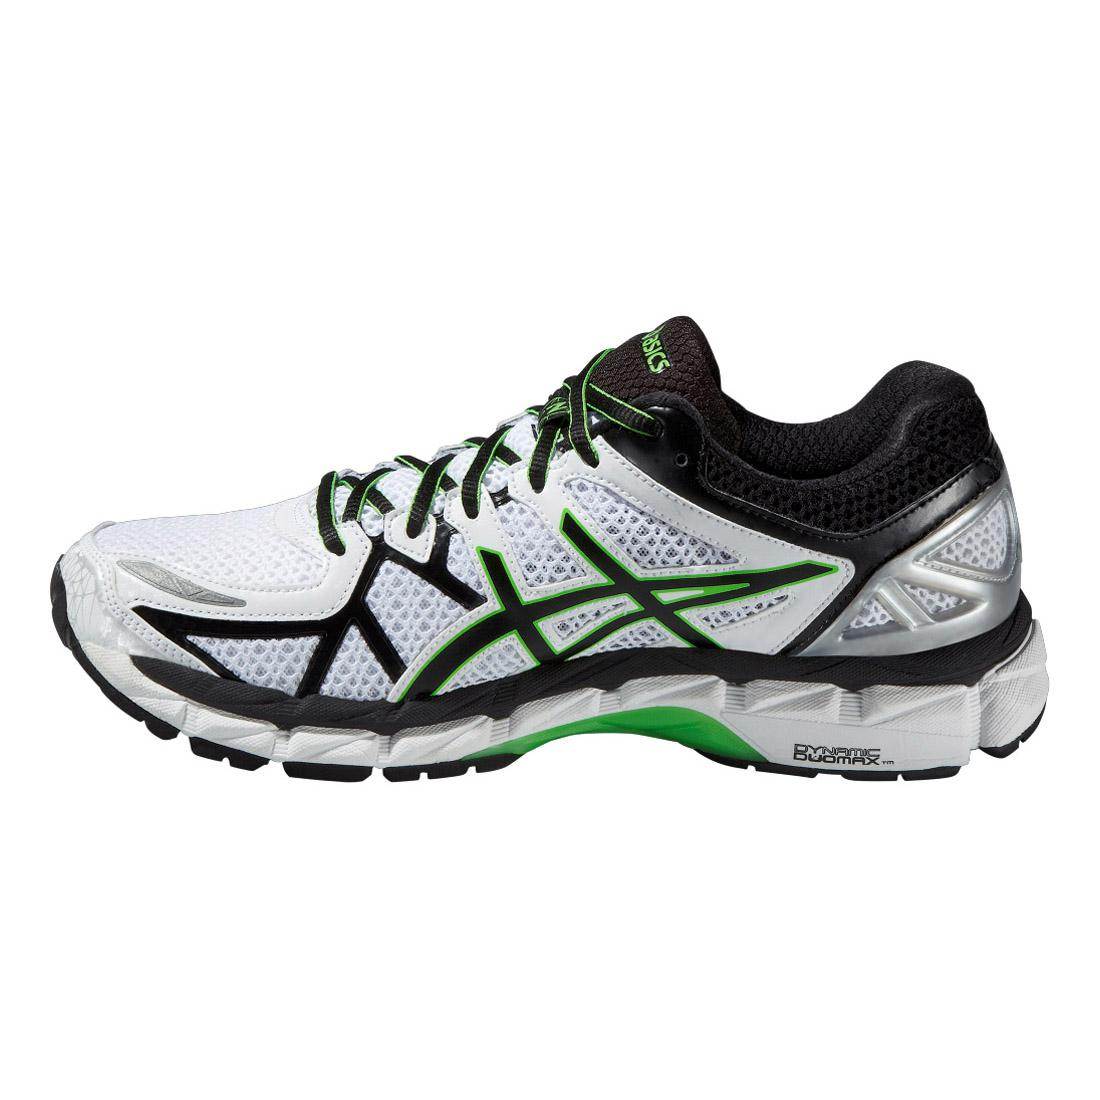 asics mens gel kayano 21 running shoes white black. Black Bedroom Furniture Sets. Home Design Ideas